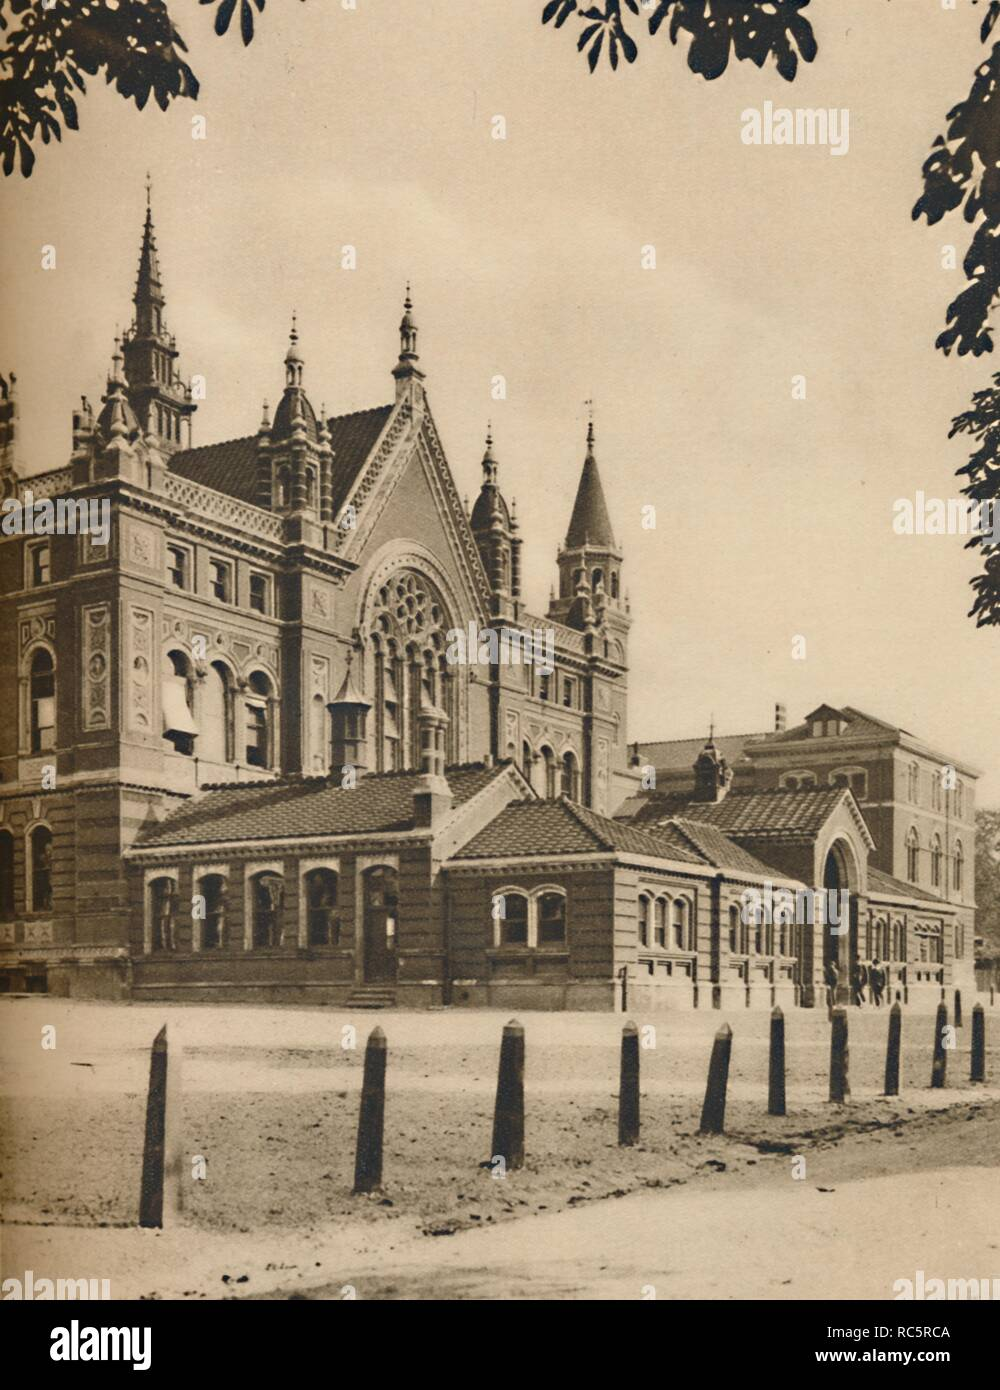 """'The Middle Block and Senior School at Dulwich College', c1935. View of the boys' public school in south-east London which was founded in 1619 by Edward Alleyn, an Elizabethan actor, with the original intention of providing an education for twelve poor boys. The buildings were designed by Charles Barry Junior and opened in 1870. Dulwich College remains an independent public (fee-paying) school. From """"Wonderful London, Volume 2"""", edited by Arthur St John Adcock. [The Fleetway House, London, c1935] - Stock Image"""